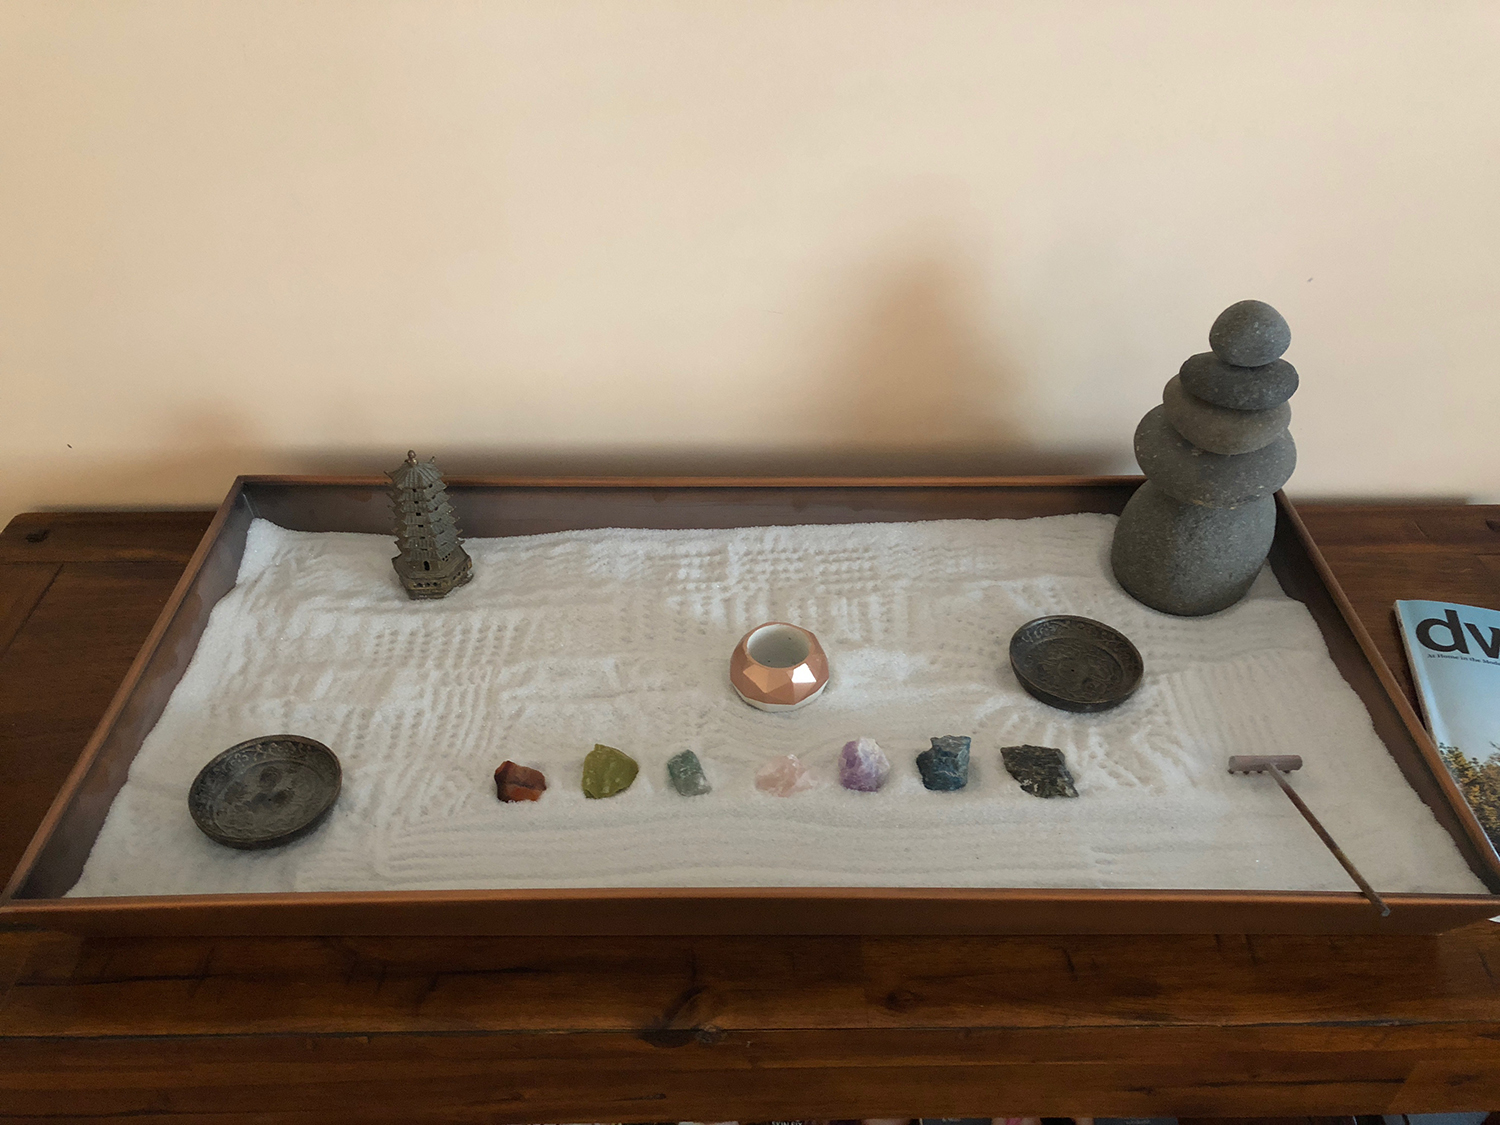 The lounge has a mini Zen sand garden that guests can play with for the purpose of relaxation.